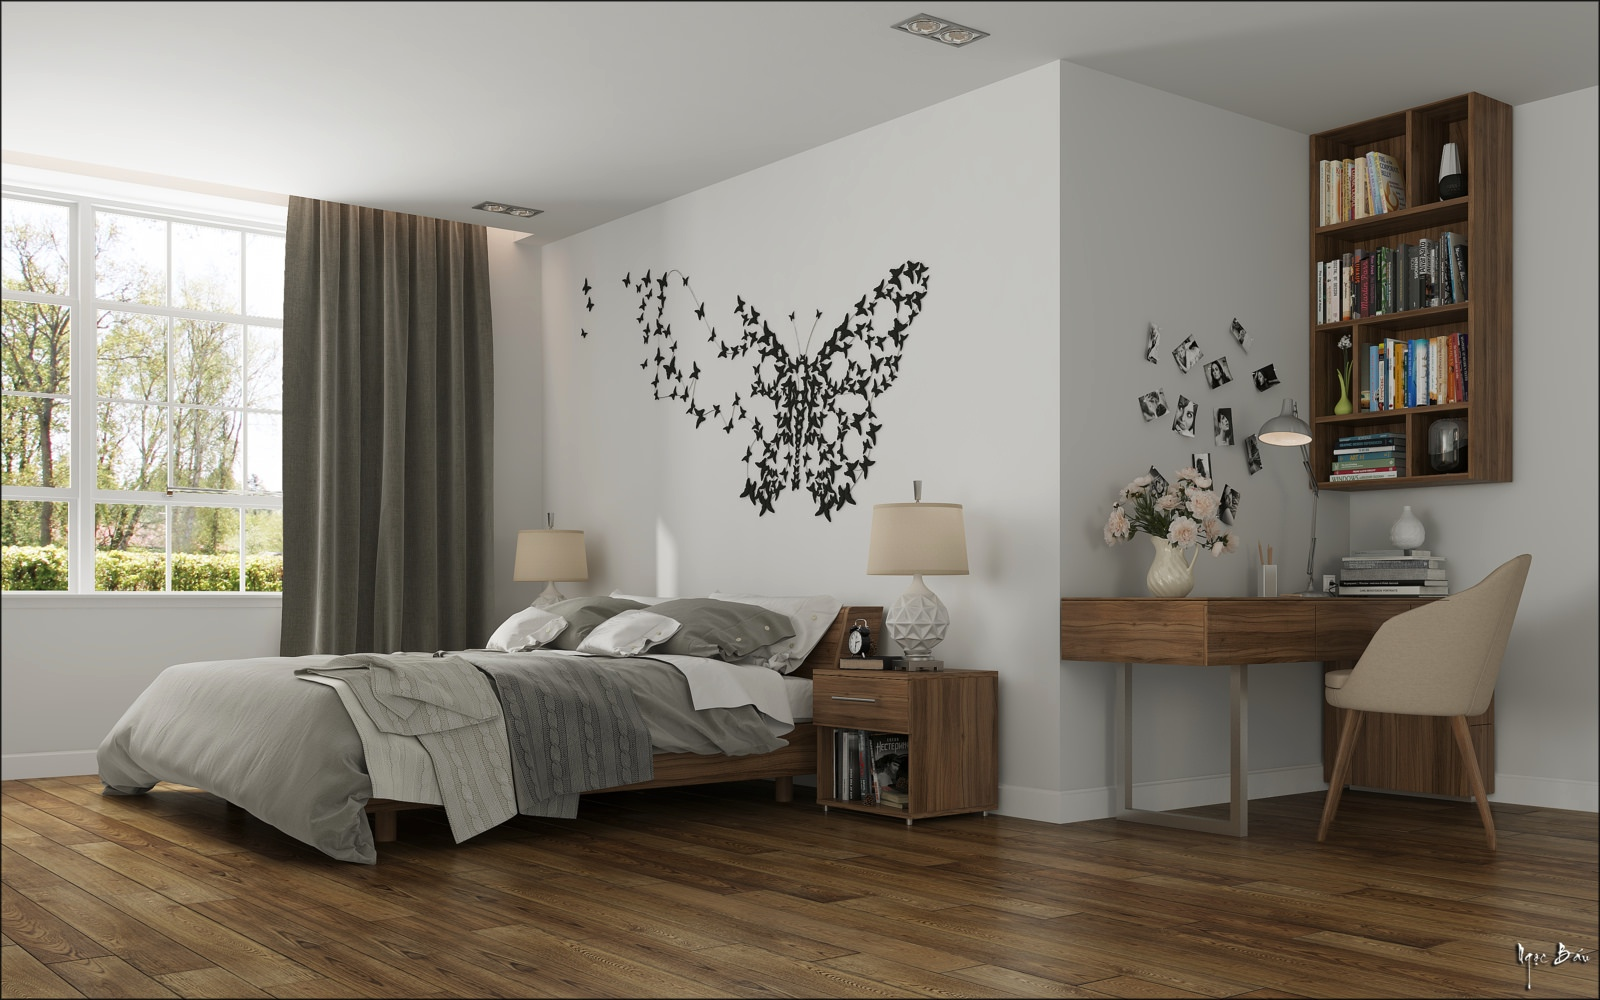 Bedroom butterfly wall art interior design ideas for Decoration murale hexagonale